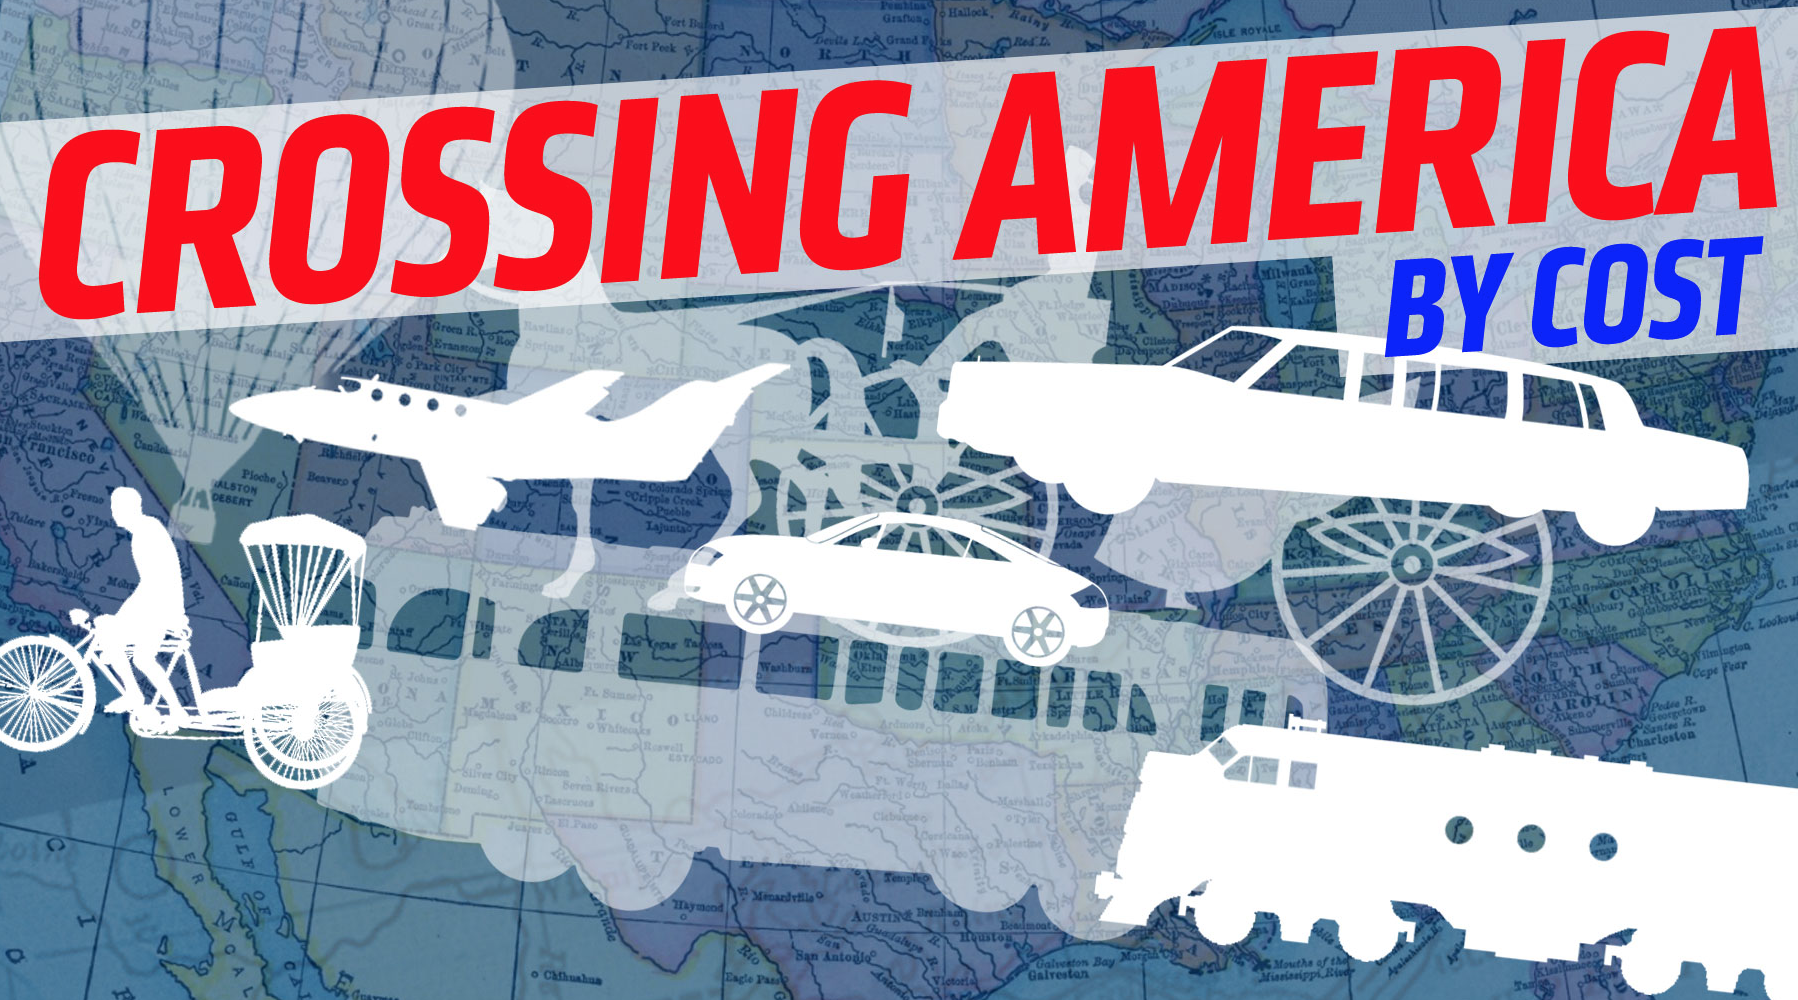 These Are The Most Expensive Ways To Cross America